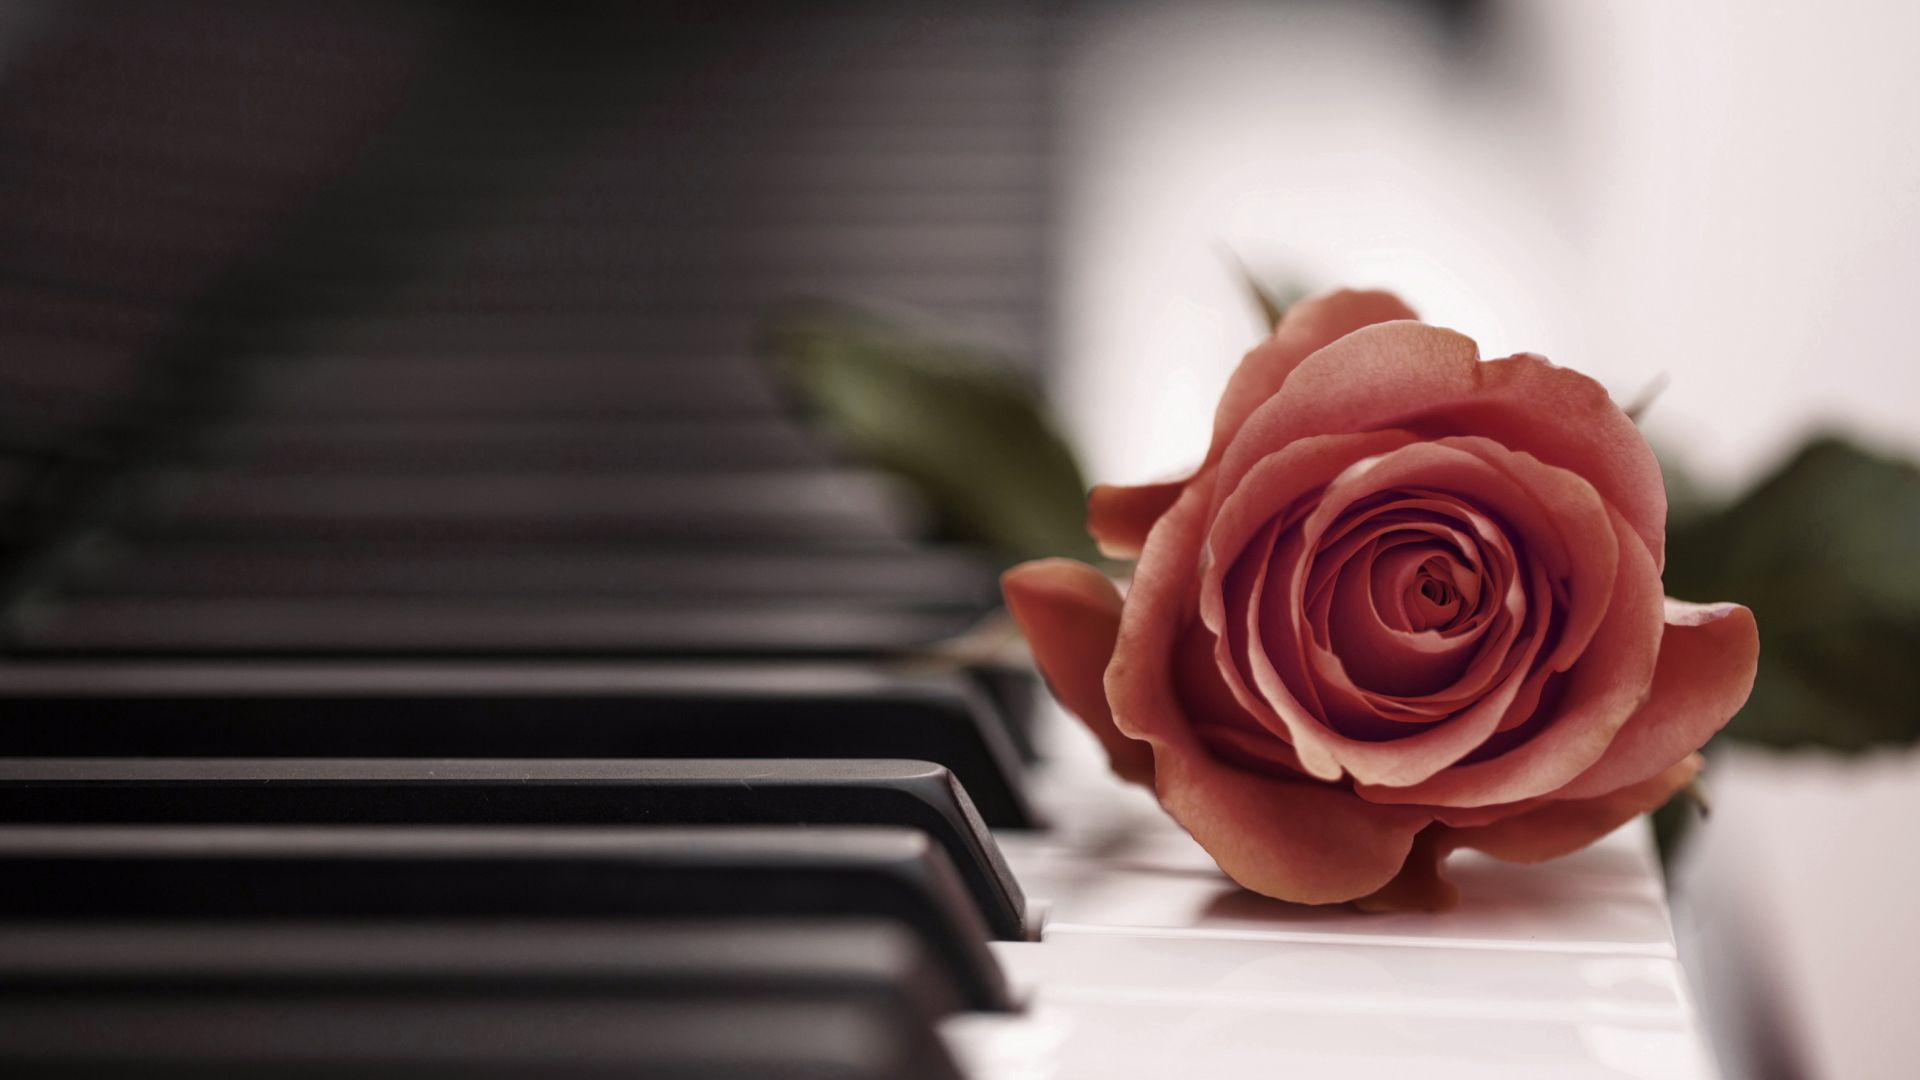 Rose Piano Wallpapers Phone With Hd Desktop 1920x1080 Px 501 35 Kb